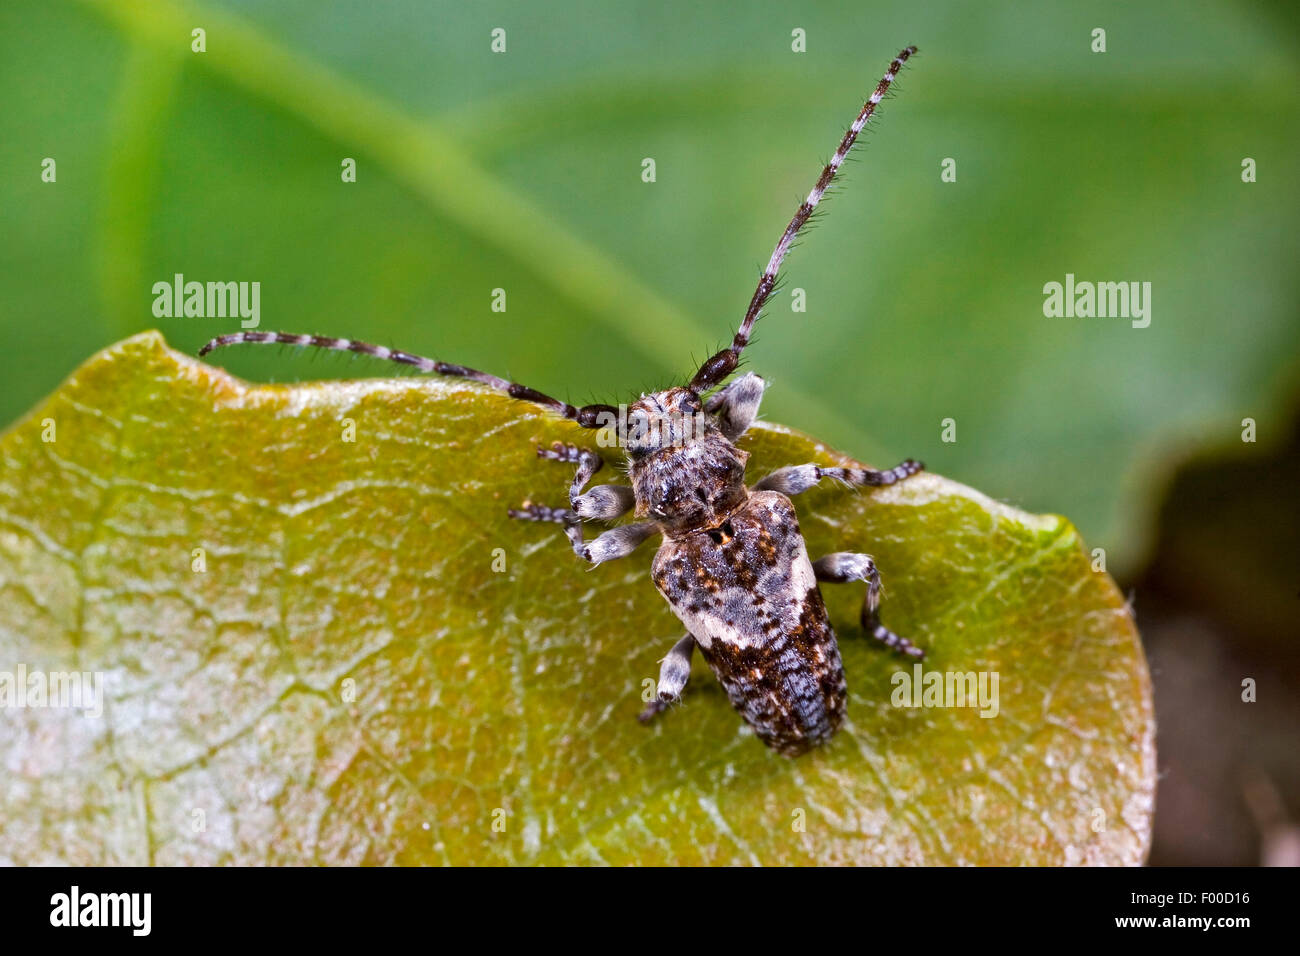 Conifer-wood longhorn beetle, Pine Longhorn (Pogonocherus fasciculatus), on a leaf, Germany - Stock Image